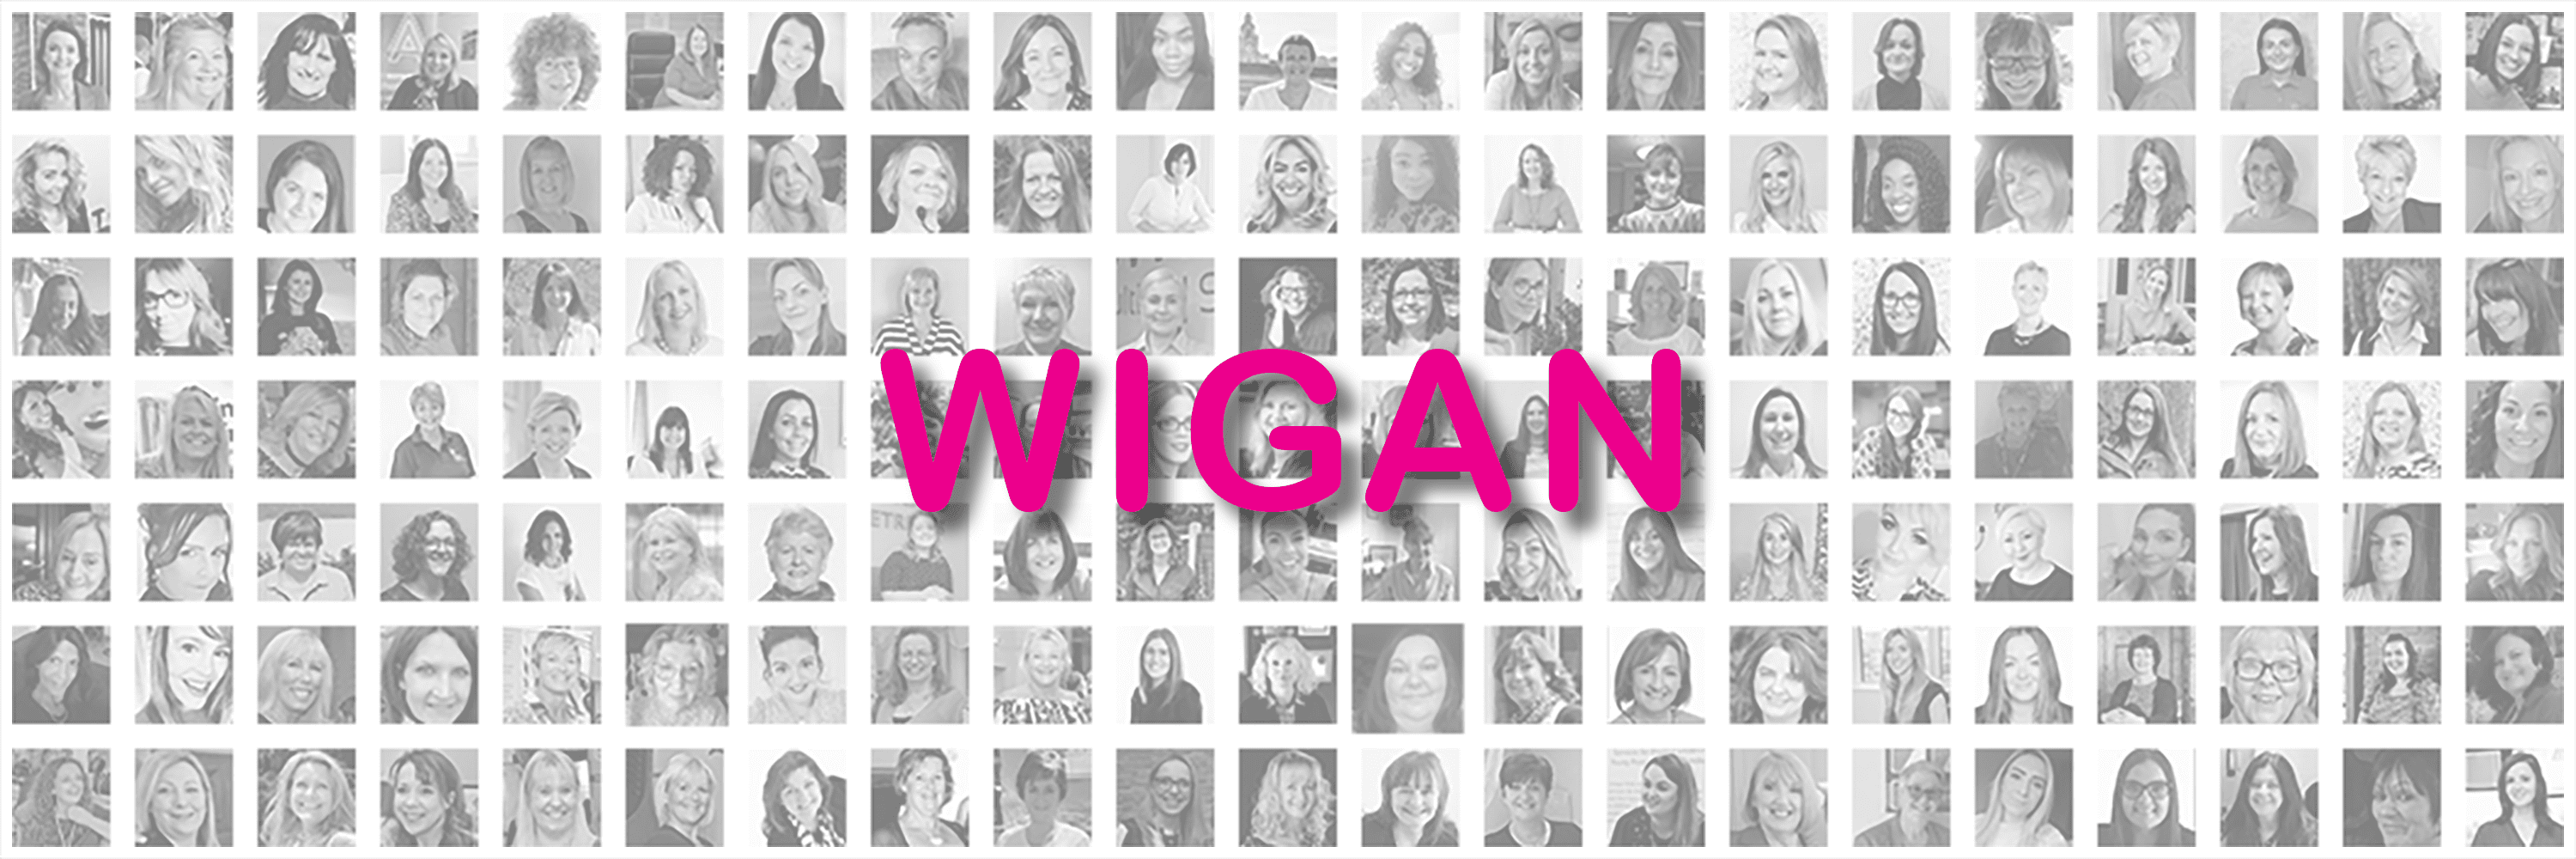 Pink Link Ladies Networking In Wigan For Women in Business Banner